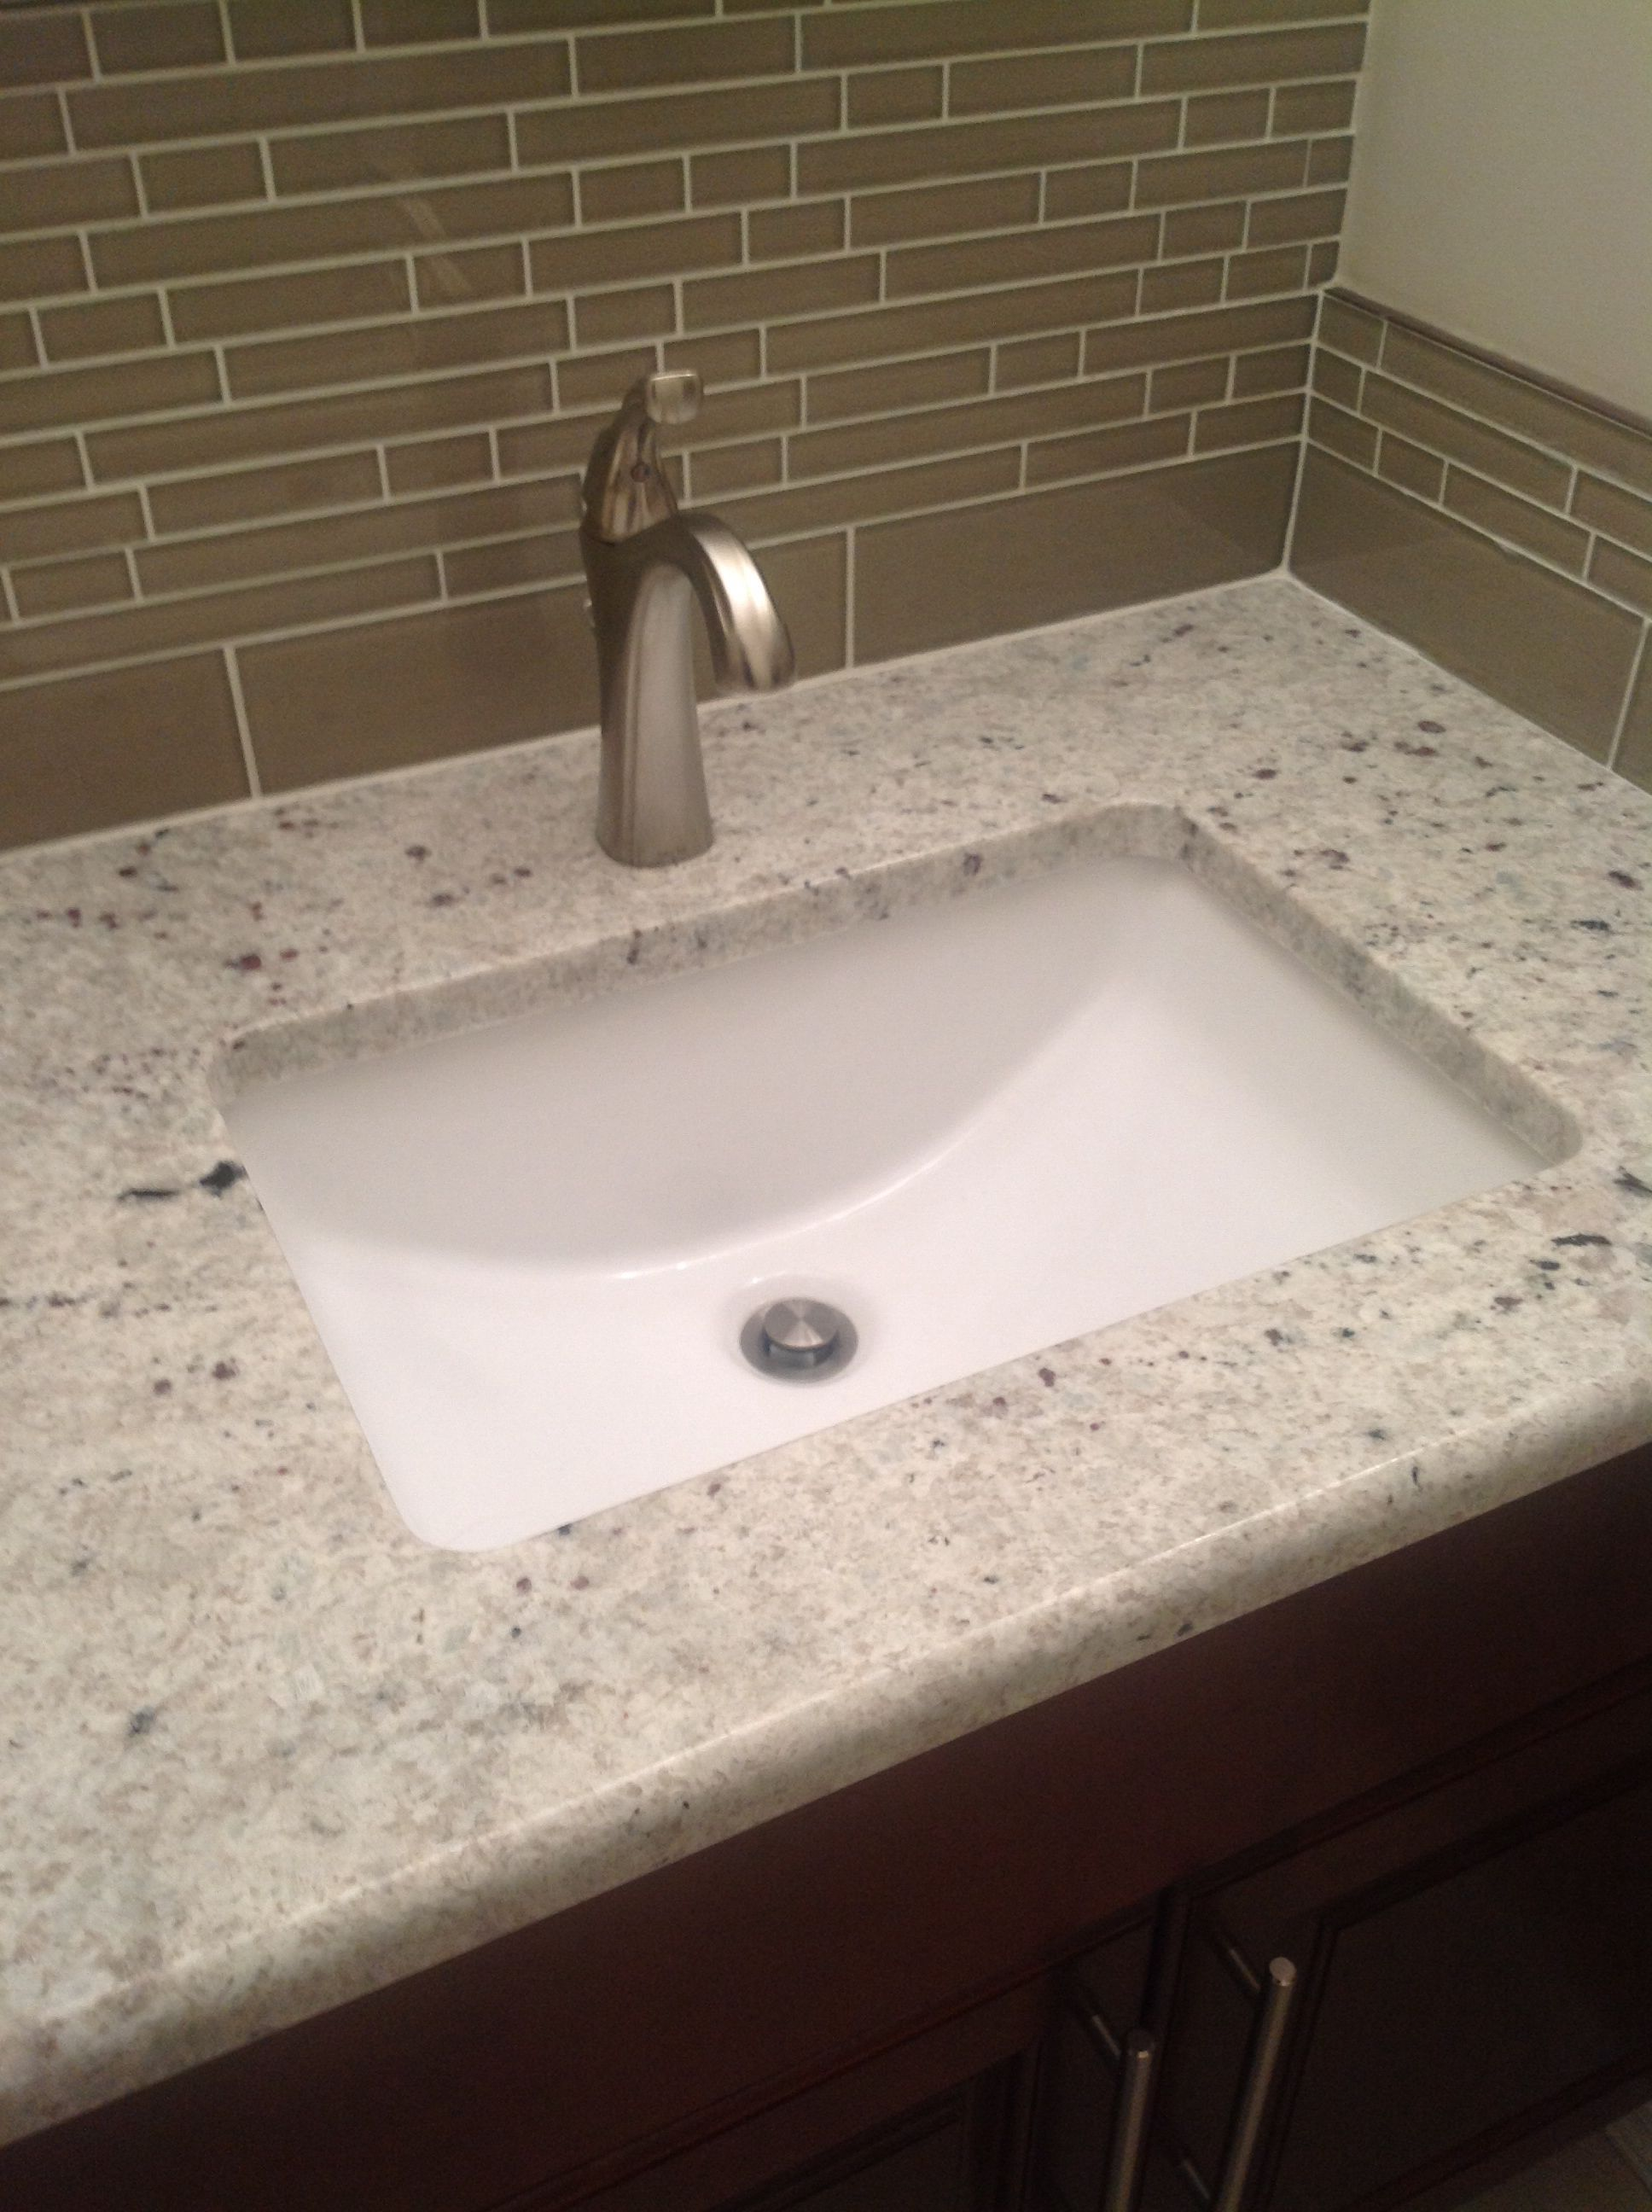 Bathroom Update Rectangle Undermount Sink Brushed Nickel Faucet Delta Addison Granite Counter Undermount Bathroom Sink Small Undermount Bathroom Sink Sink